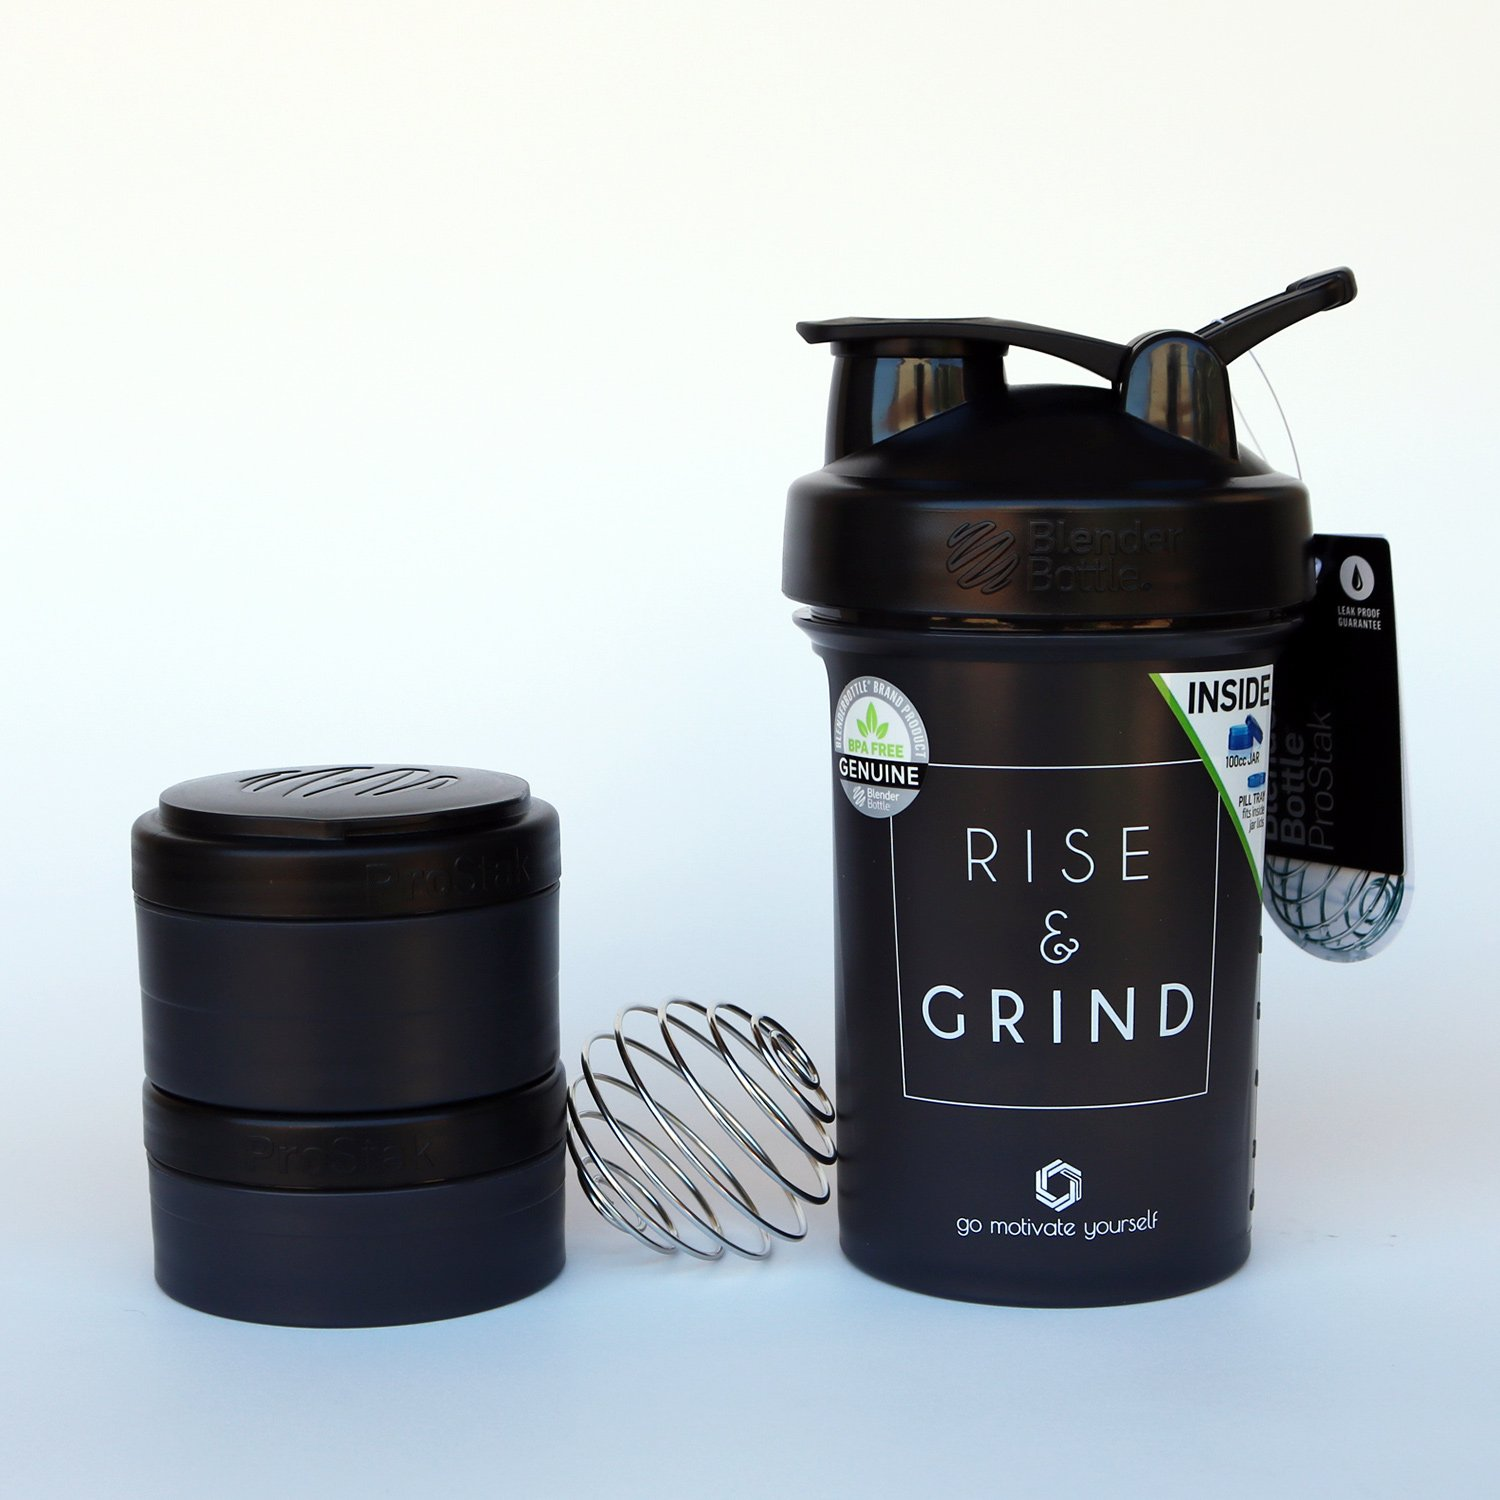 Protein Shaker Bottle with BlenderBall Whisk and 2 Twist n/' Lock Attachable containers BlenderBottle 22-oz GOMOYO Motivational Quote on Blender Bottle Brand ProStak Shaker Cup